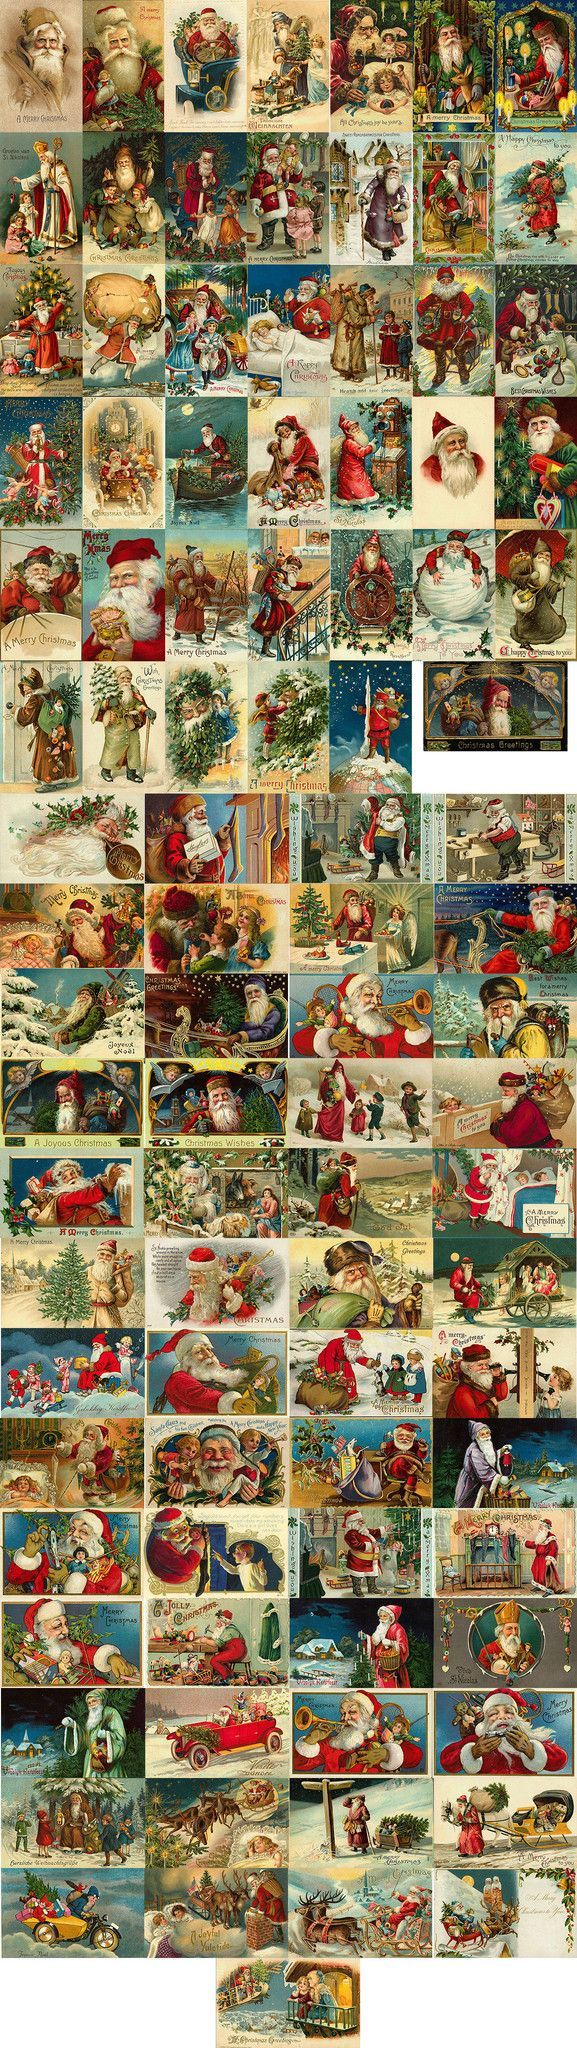 He goes by Santa Claus, Saint Nicholas and Father Christmas. Call him what you like, but he's an iconic part of many people's Christmas celebrations. This collection of 200 vintage graphics features m